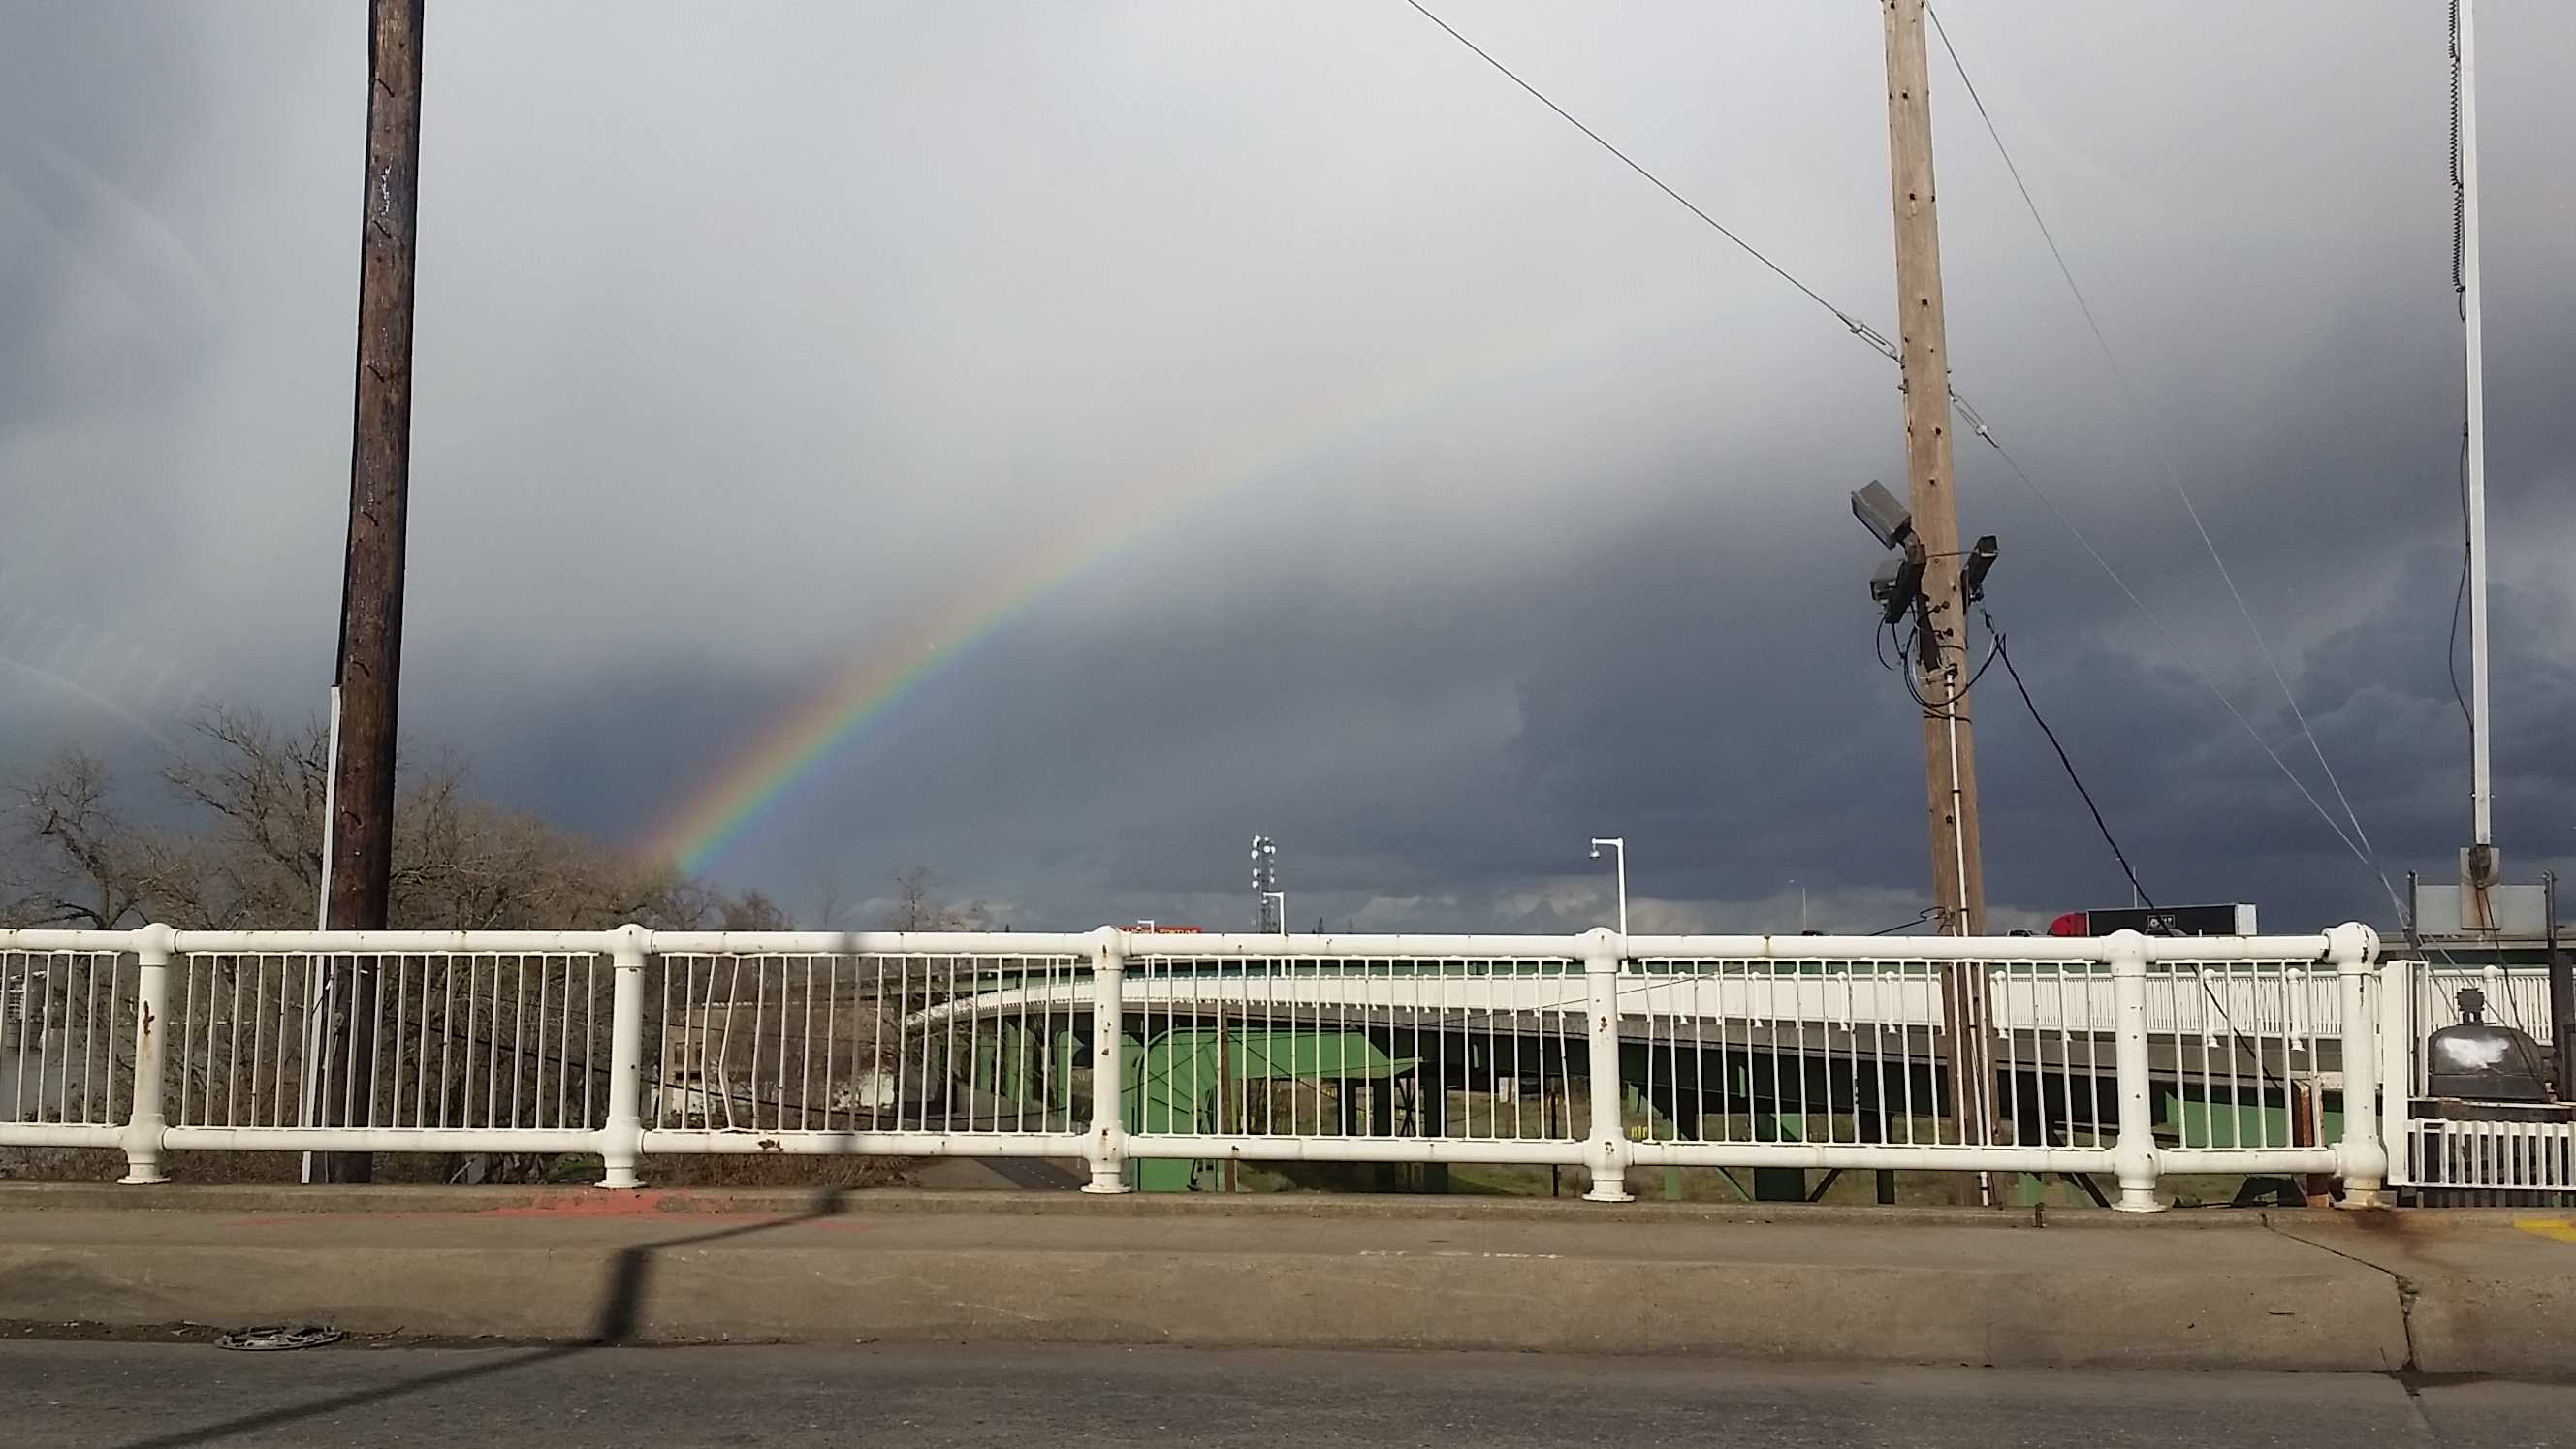 This rainbow was spotted over the I Street Bridge in Sacramento on Monday, Jan. 23, 2017.